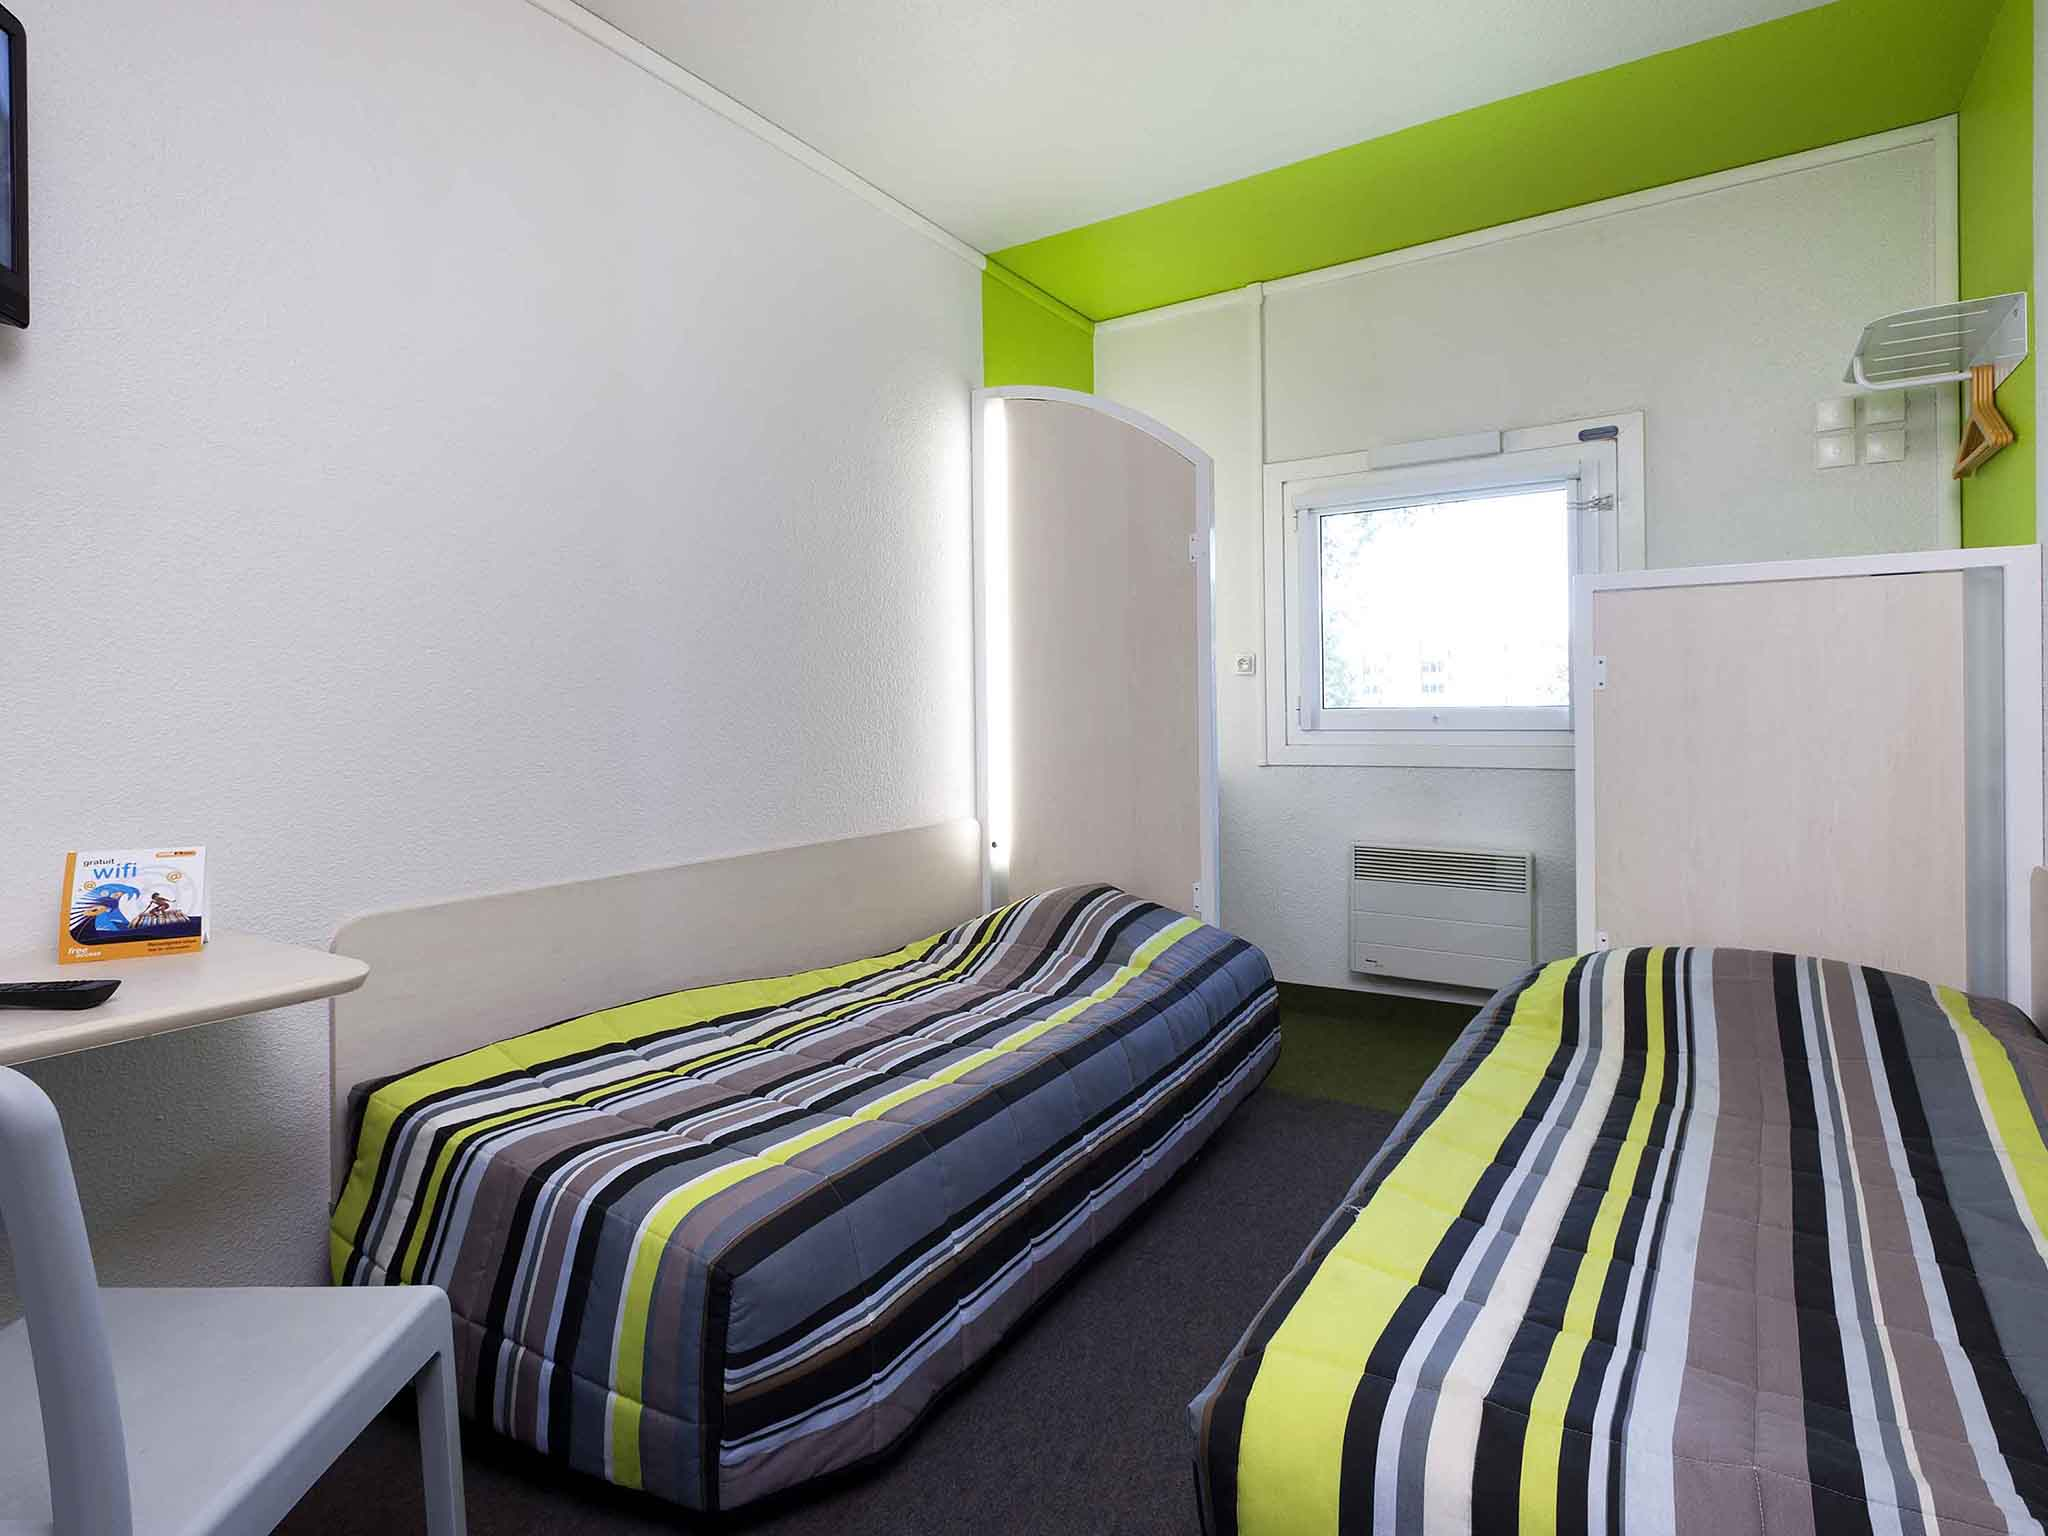 Hotel - hotelF1 Angers Ouest Beaucouze